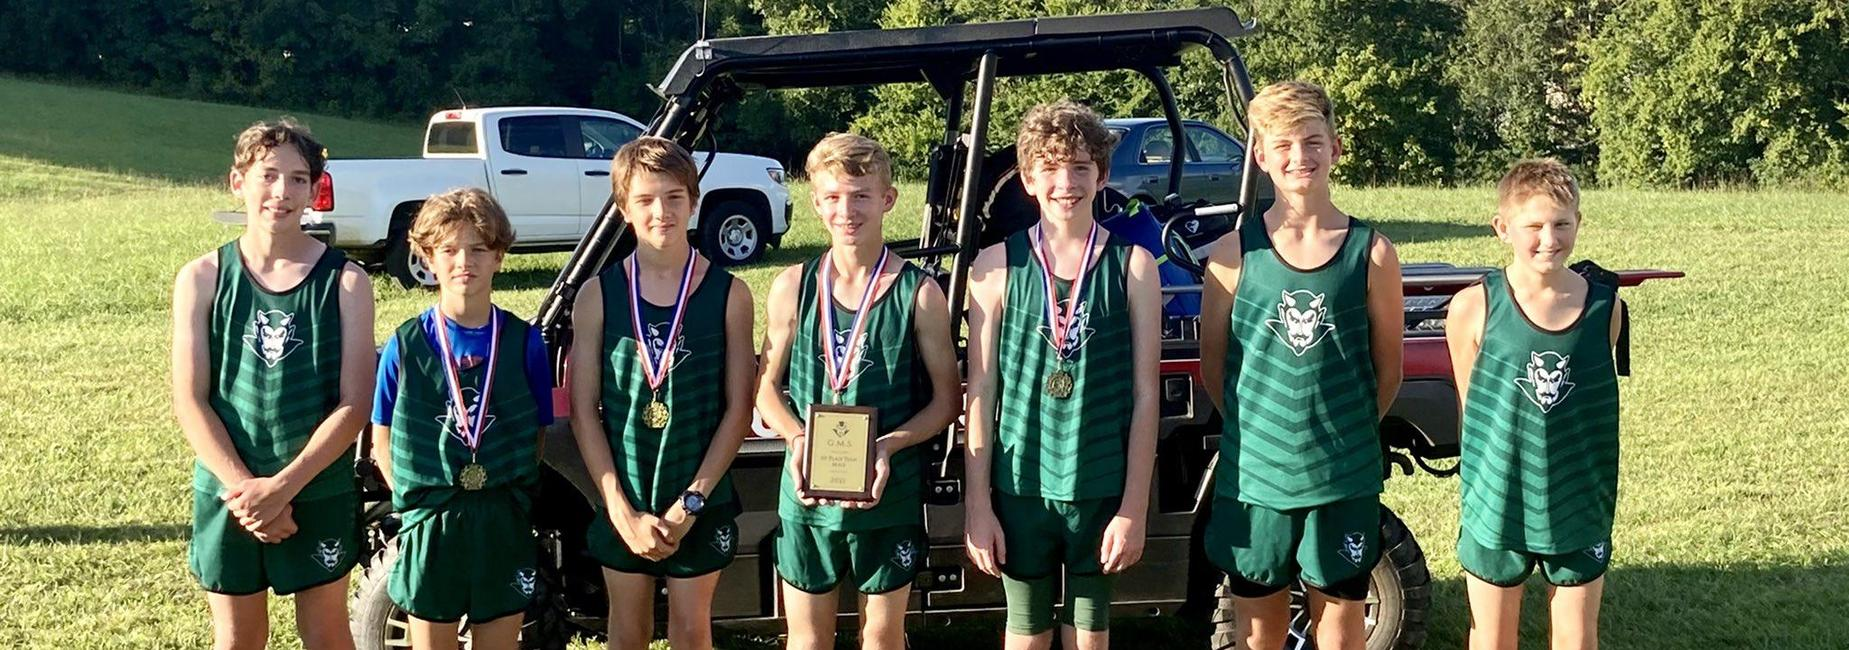 a picture of the GMS Boys Cross Country team